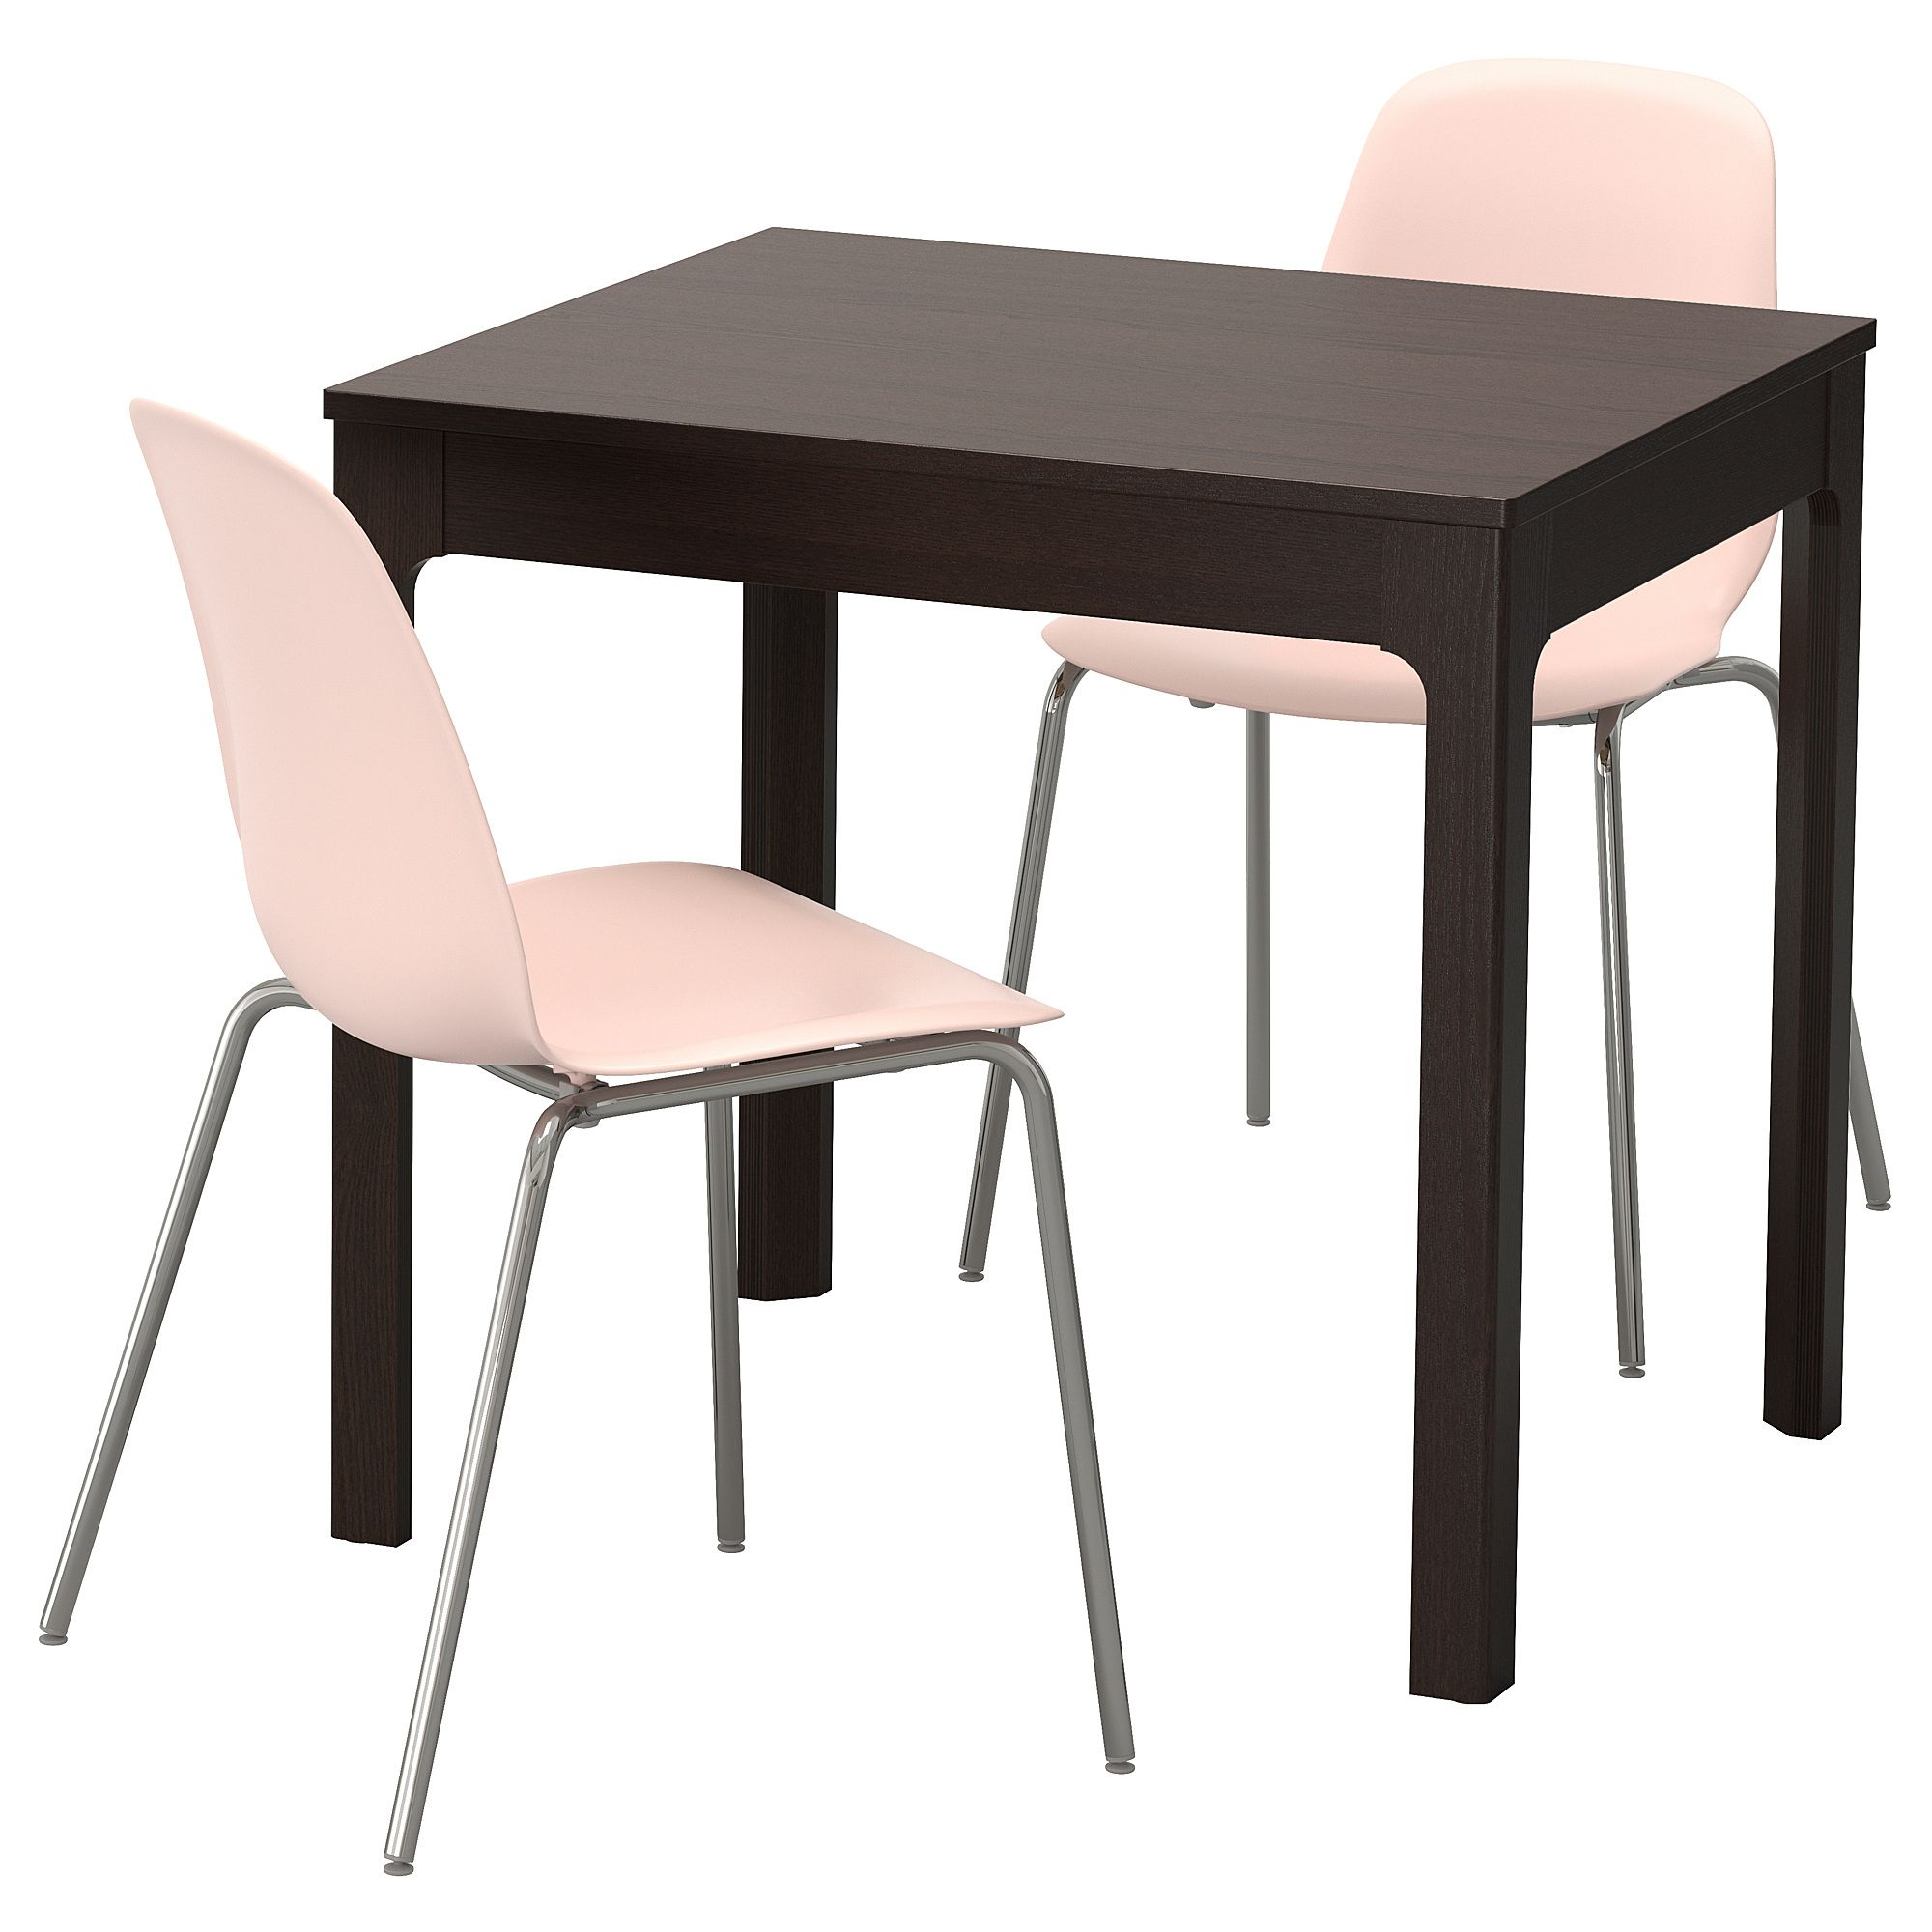 US Furniture and Home Furnishings | Ikea dining sets, Ikea